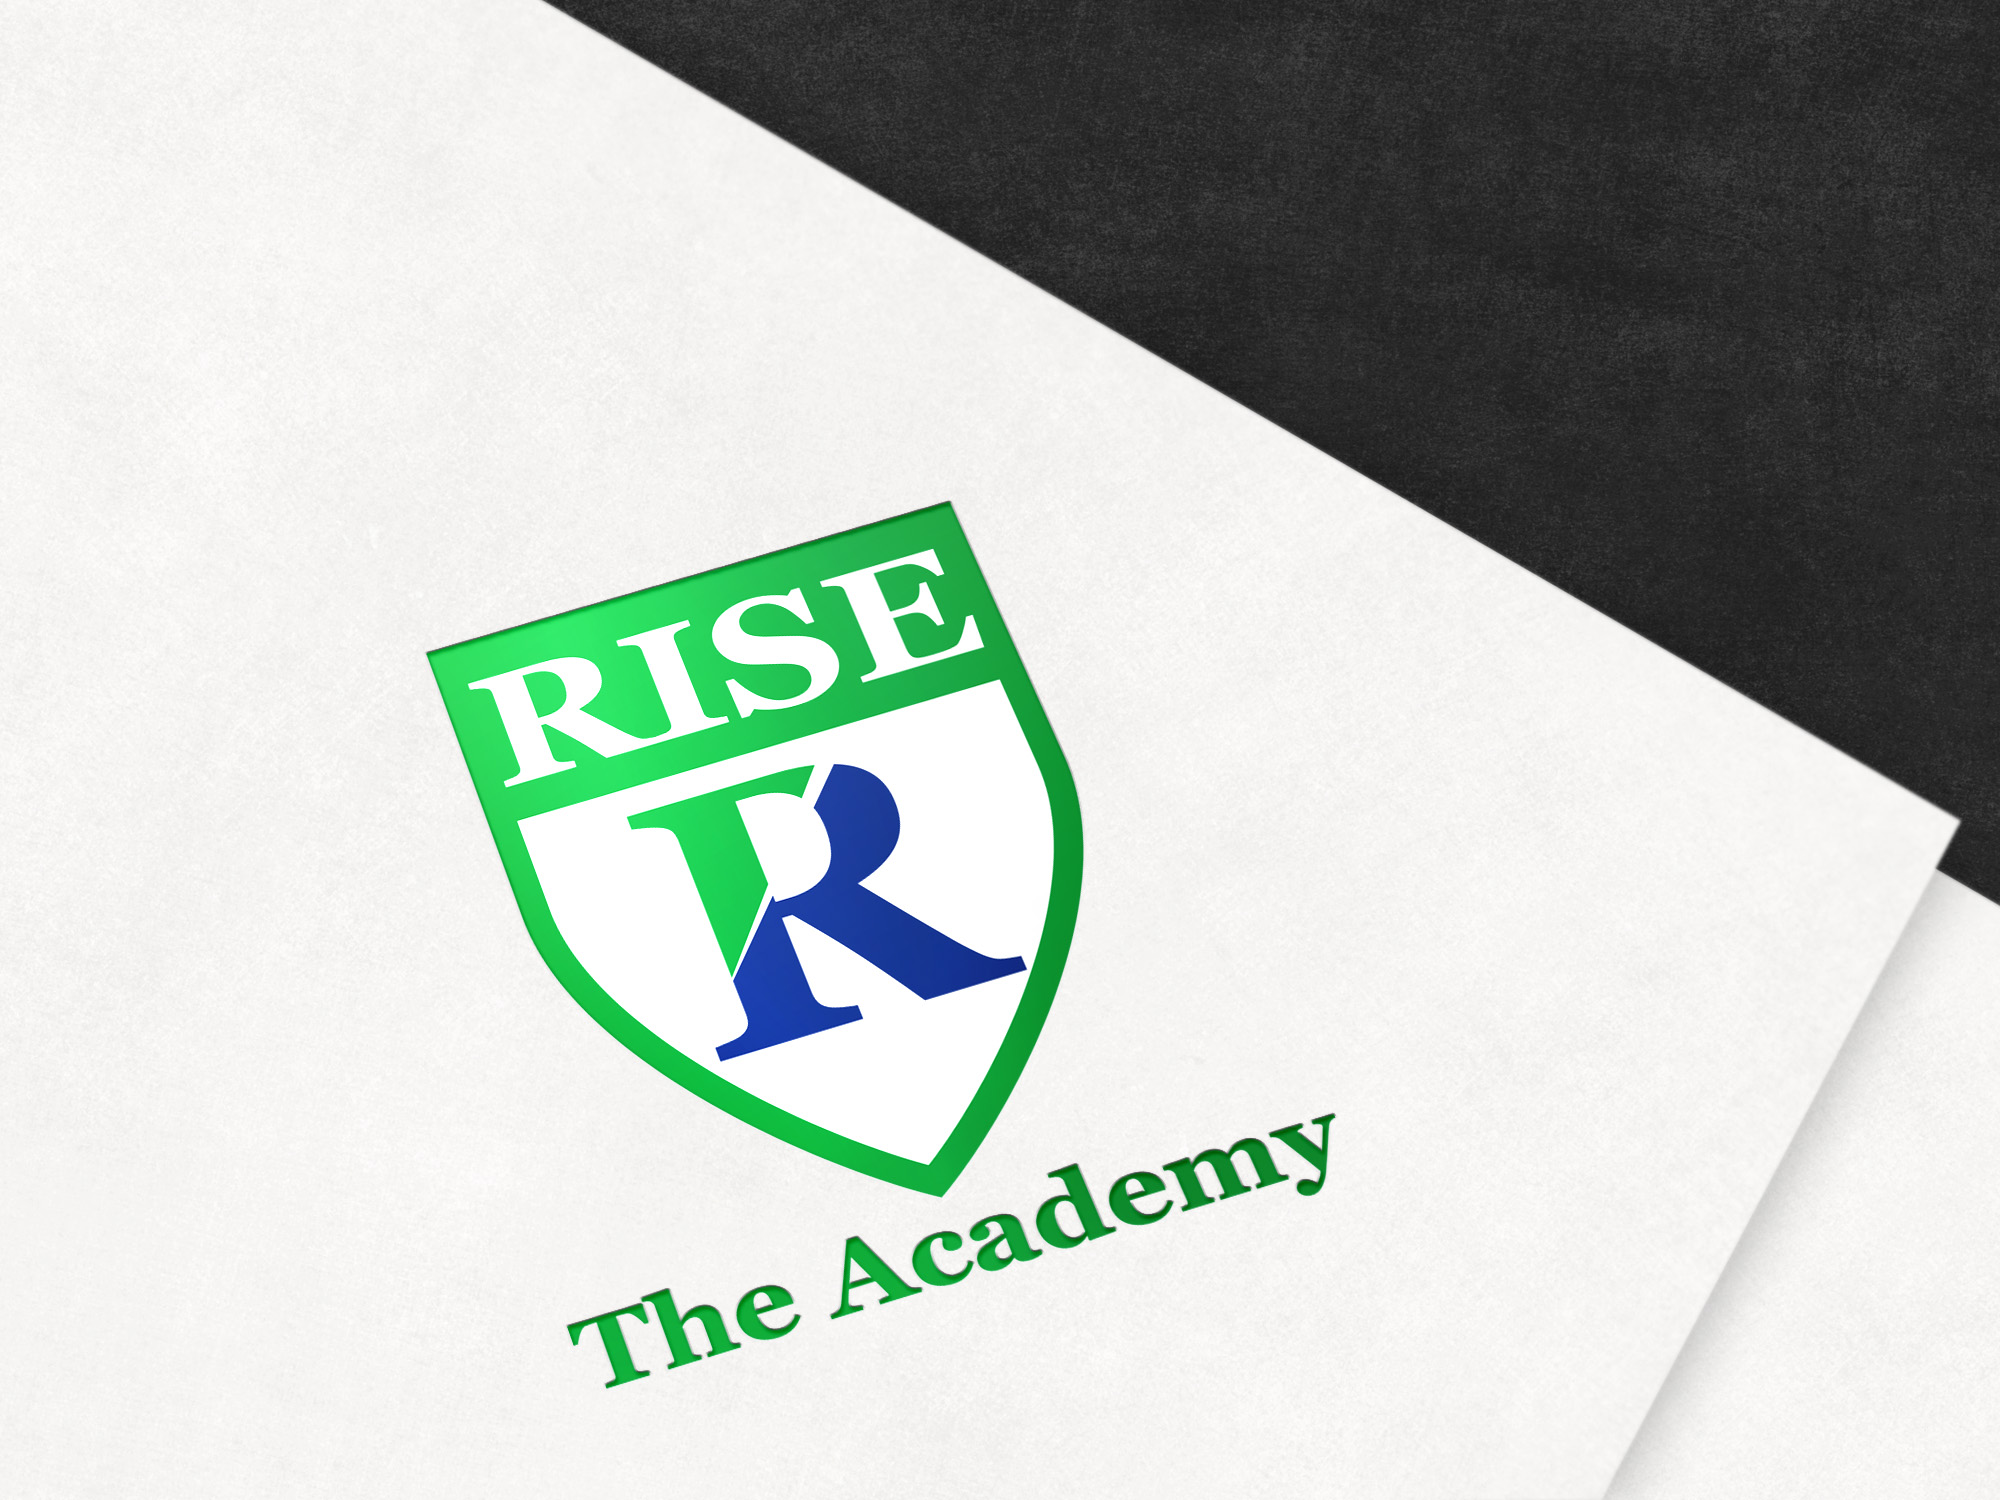 Coat of arms designed for the Rise Lacrosse school from Canada